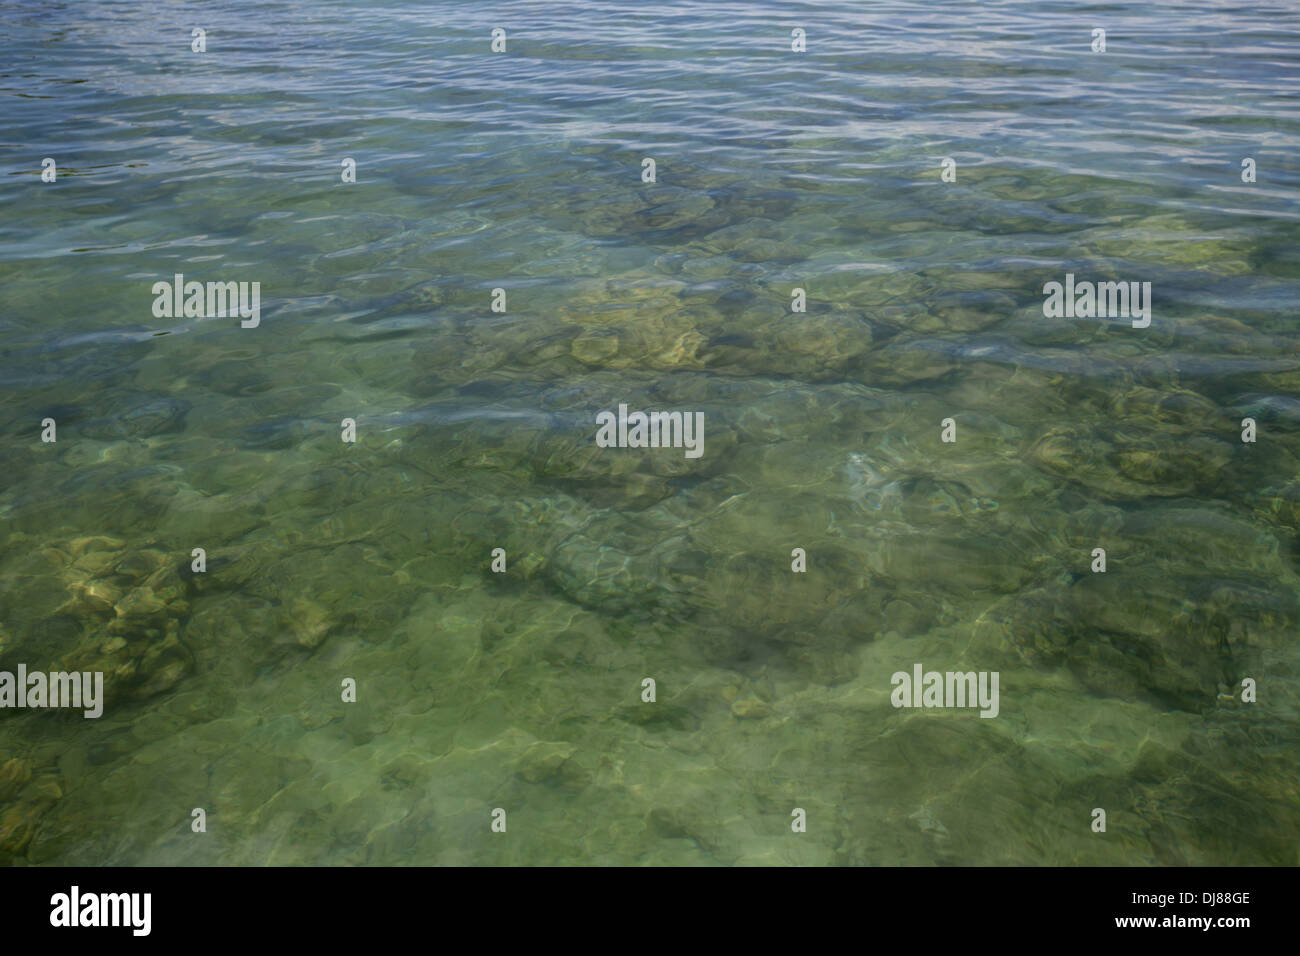 Andaman sea, Jolly Buoy beach, Andaman Islands, India - Stock Image